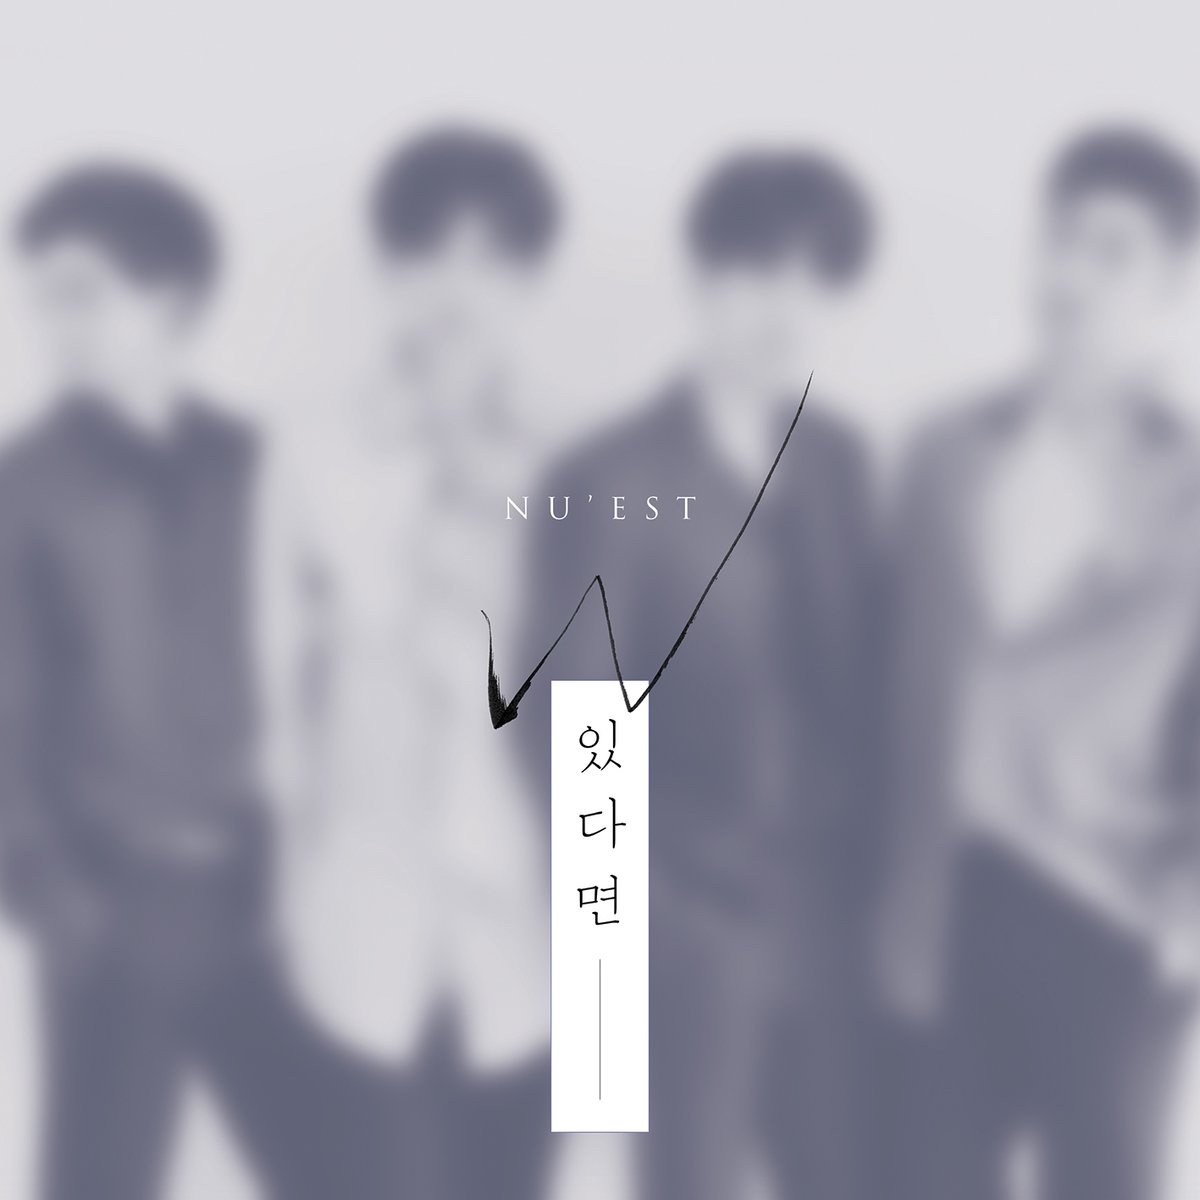 NUEST W Reveals Title And Release Date Of Upcoming Special Single Album